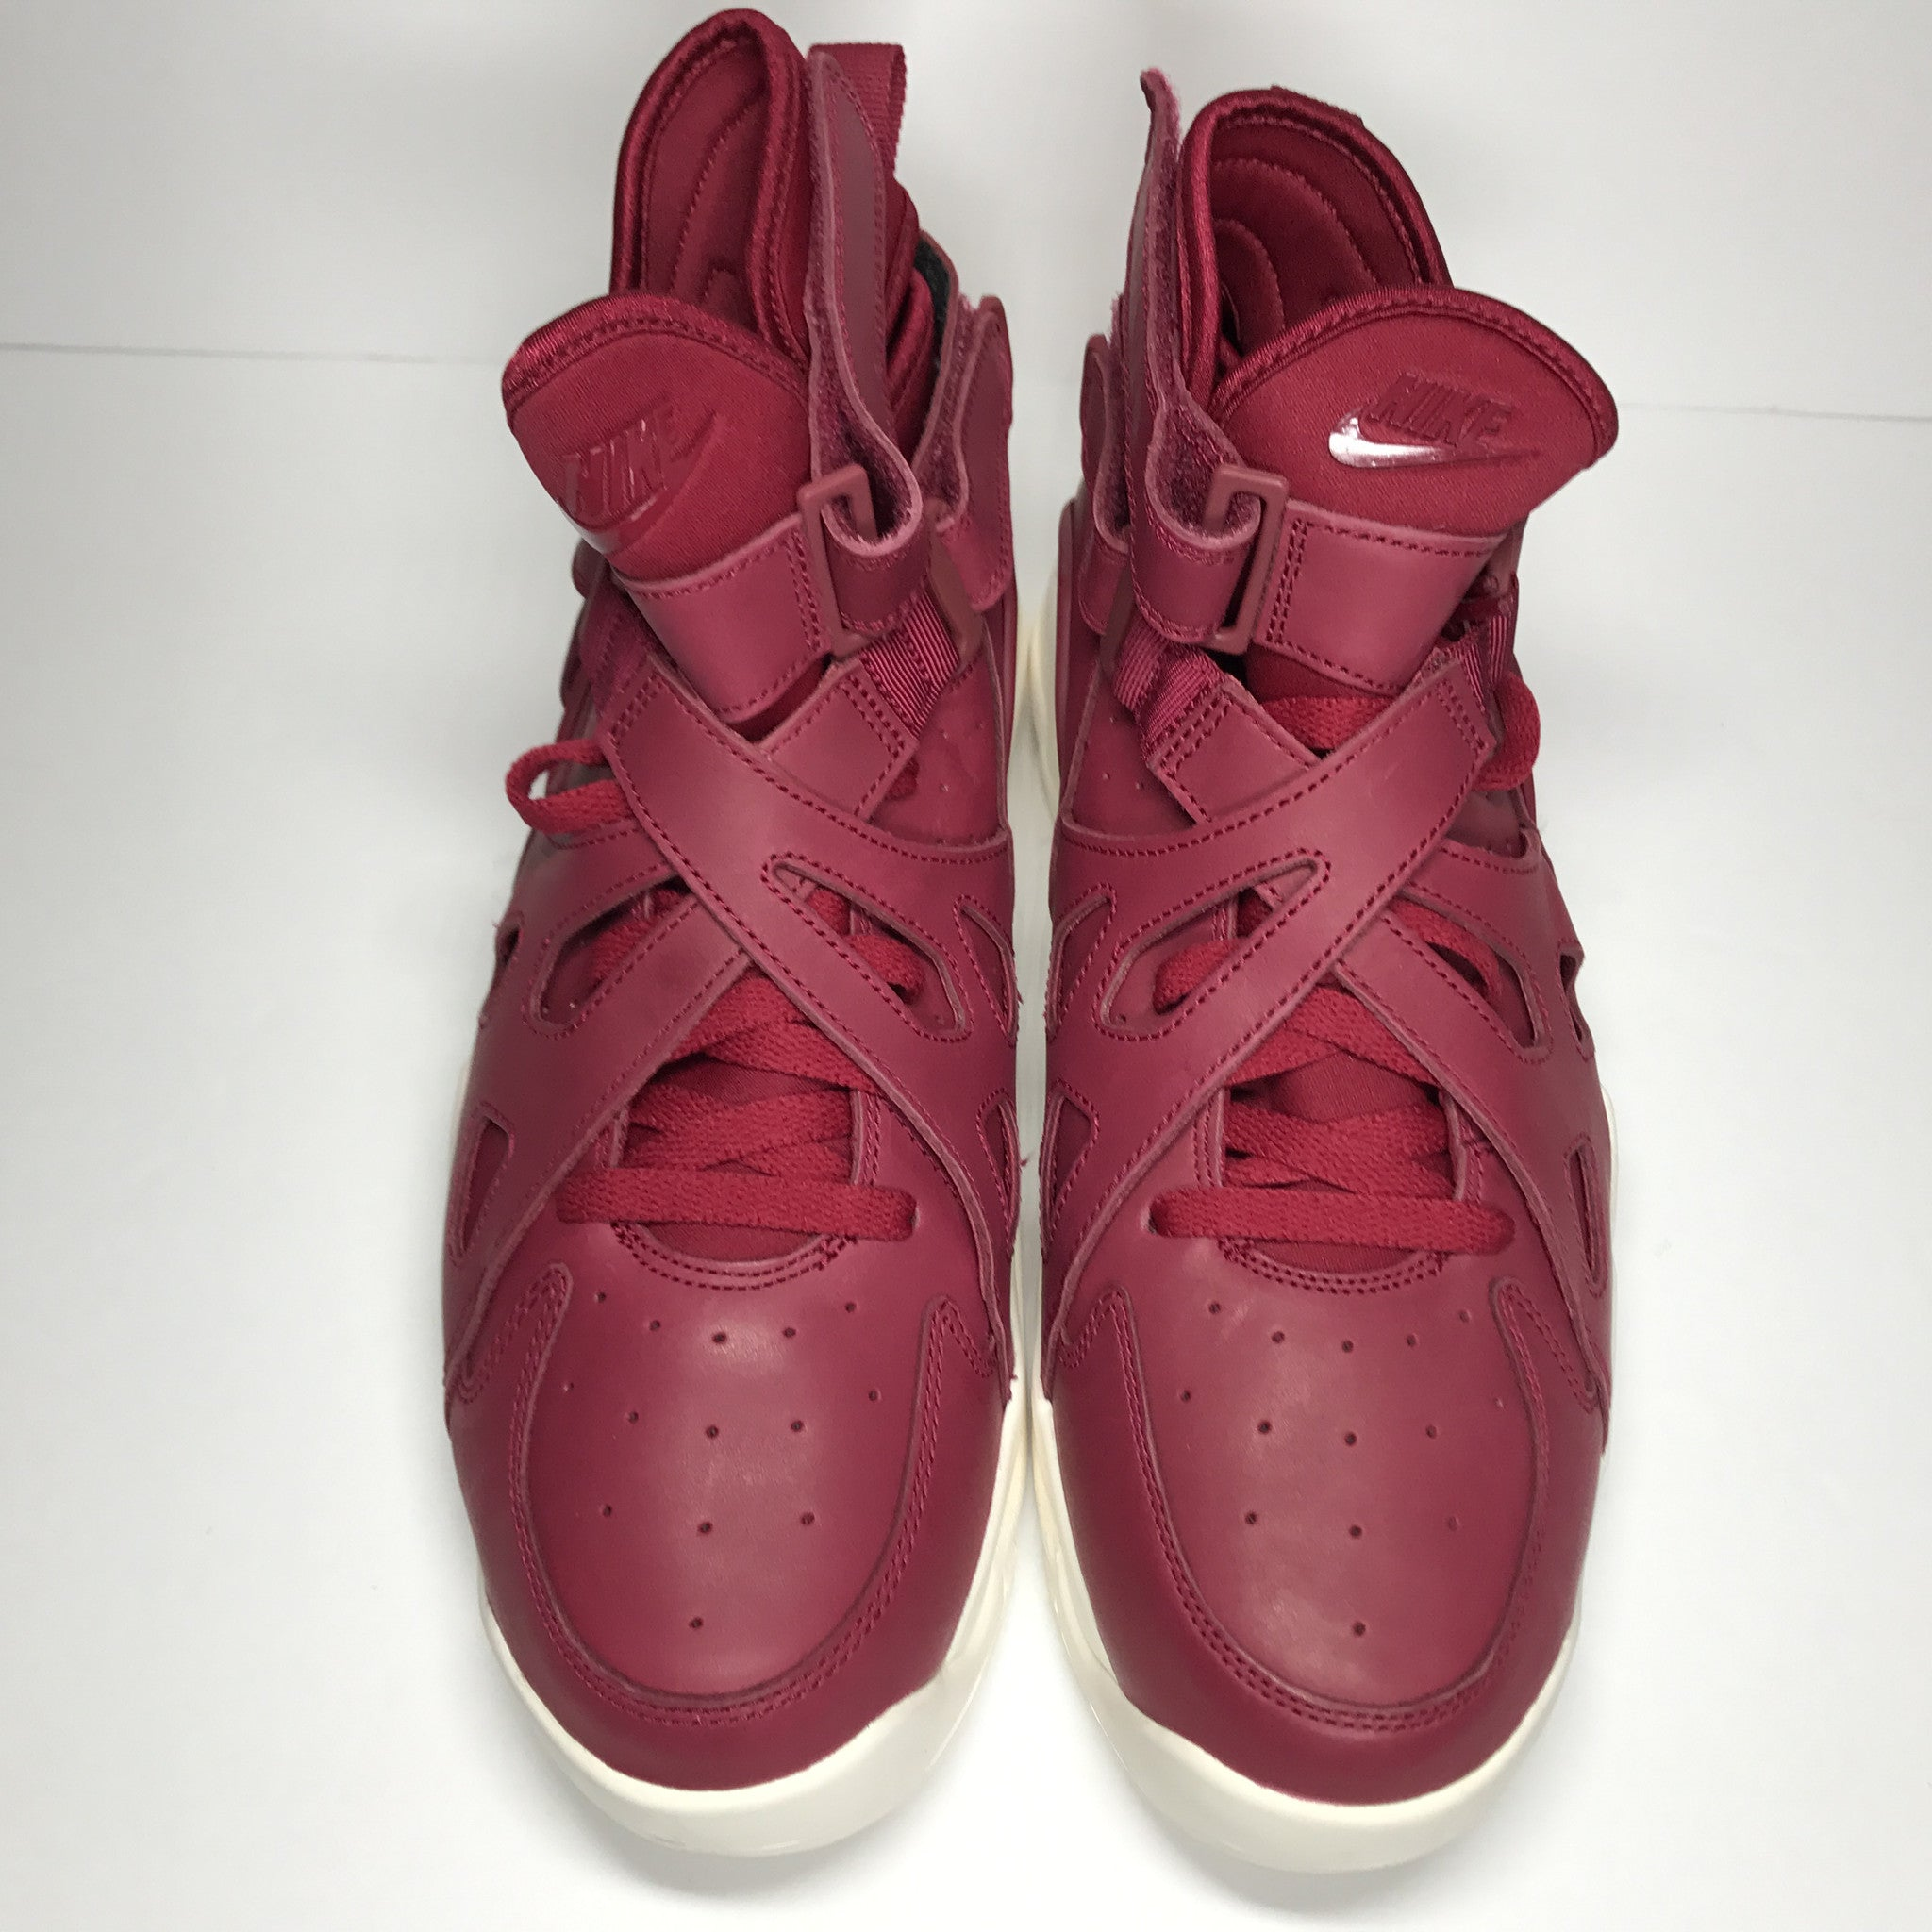 DS Nike Lab Air Unlimited Noble Red Size 10.5